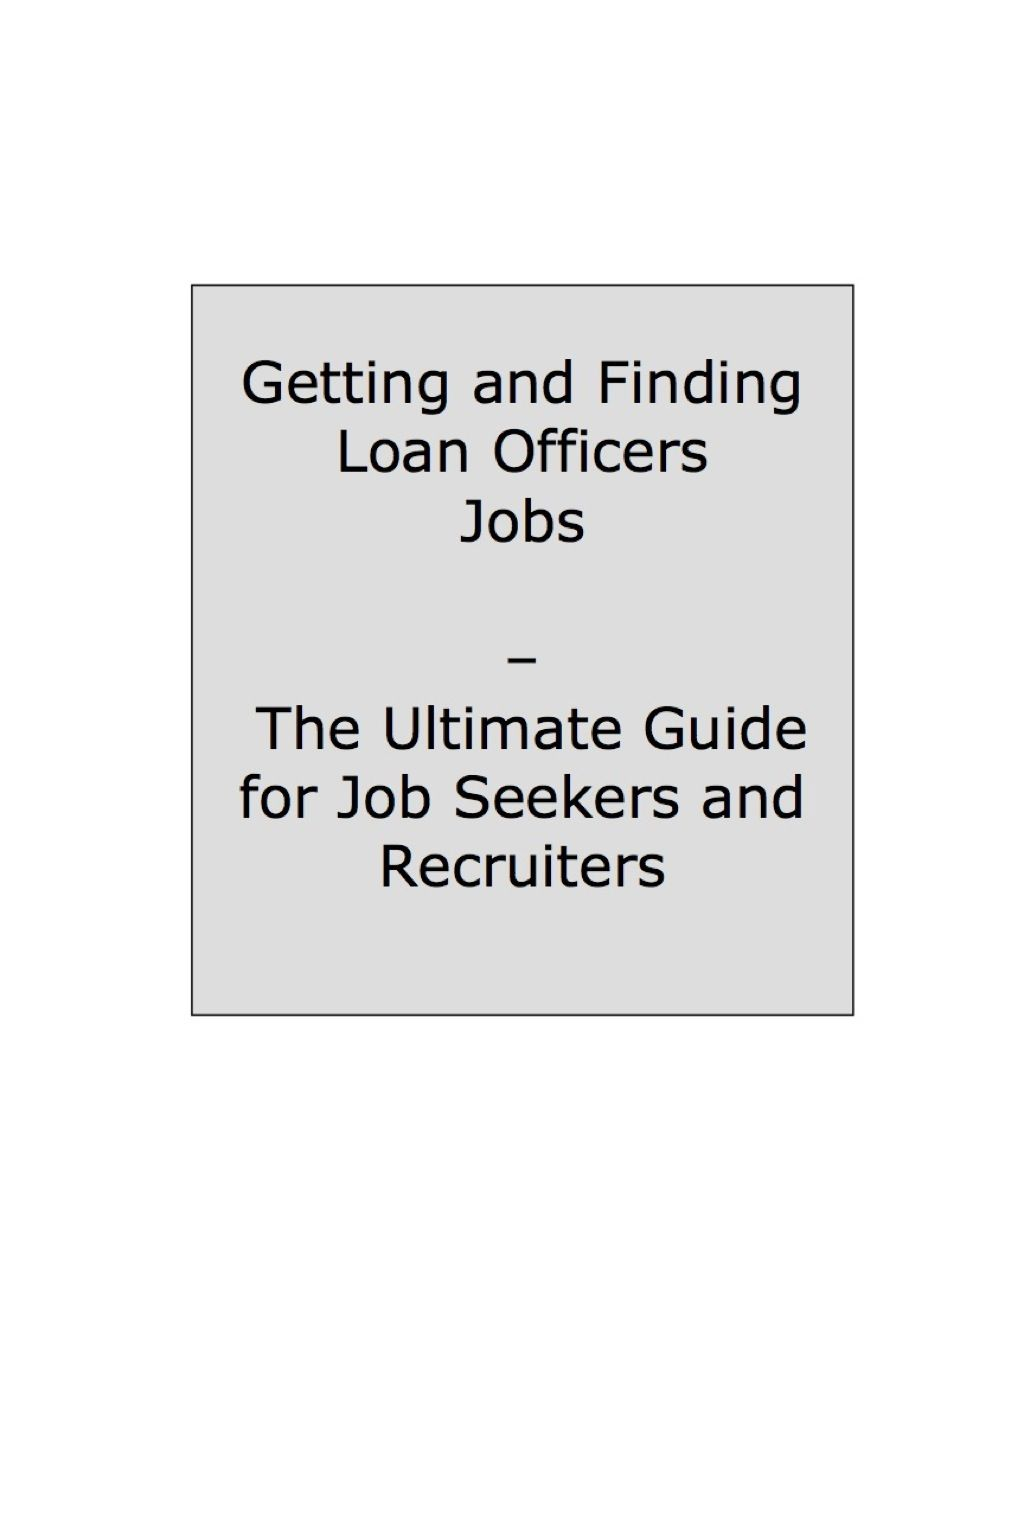 Loan officer retail personal banker mortgage loan officer